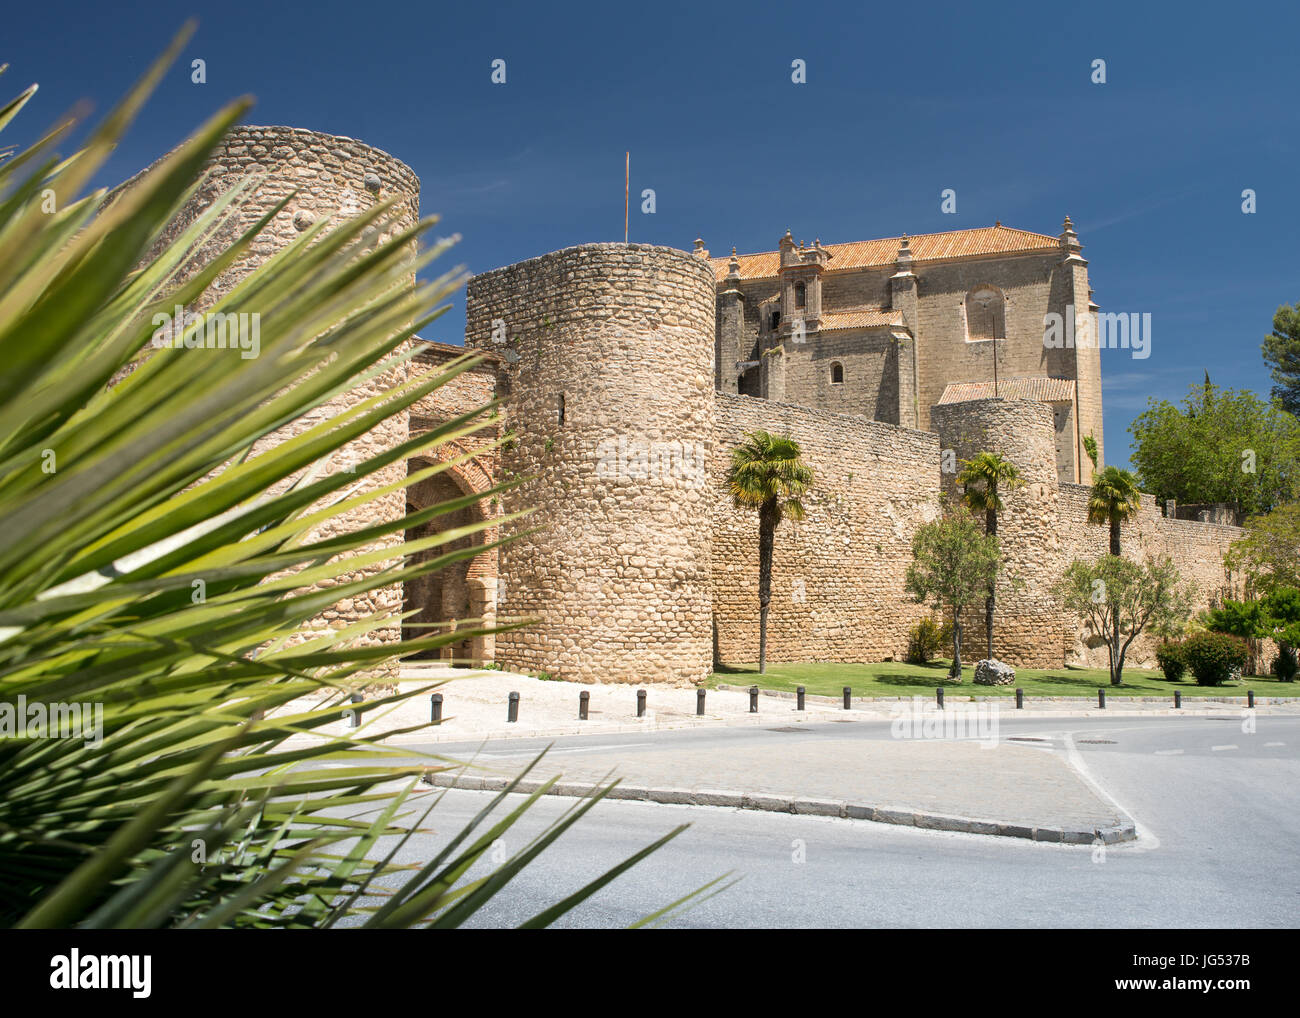 Arabic walls and City Gates in the City of Ronda in Spain's Malaga province, Andalusia Stock Photo